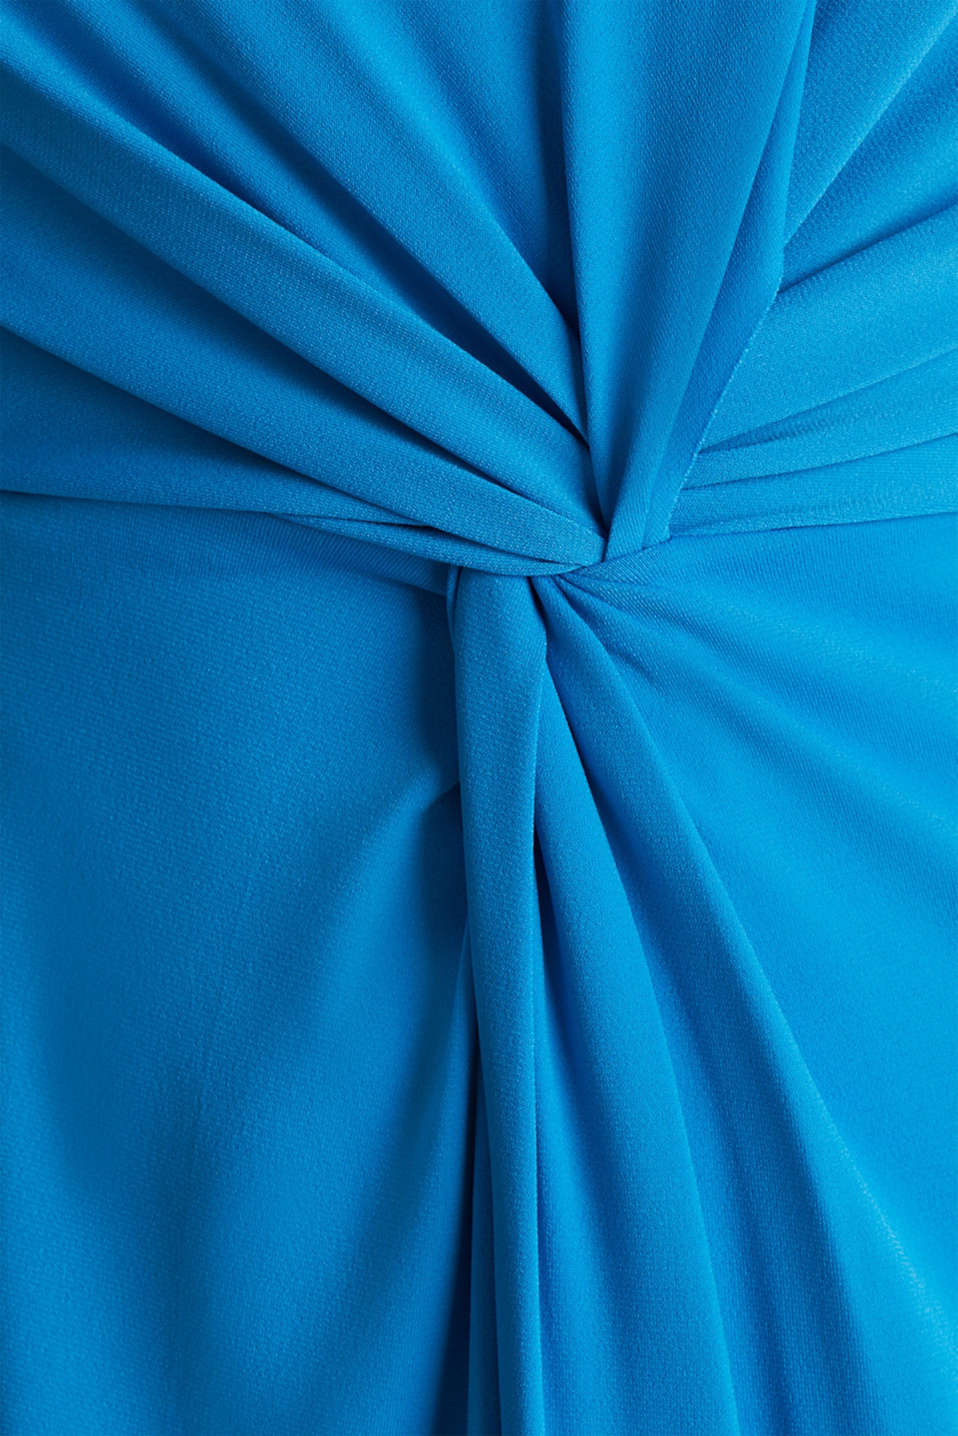 Stretch jersey dress with a draped effect, PETROL BLUE, detail image number 2